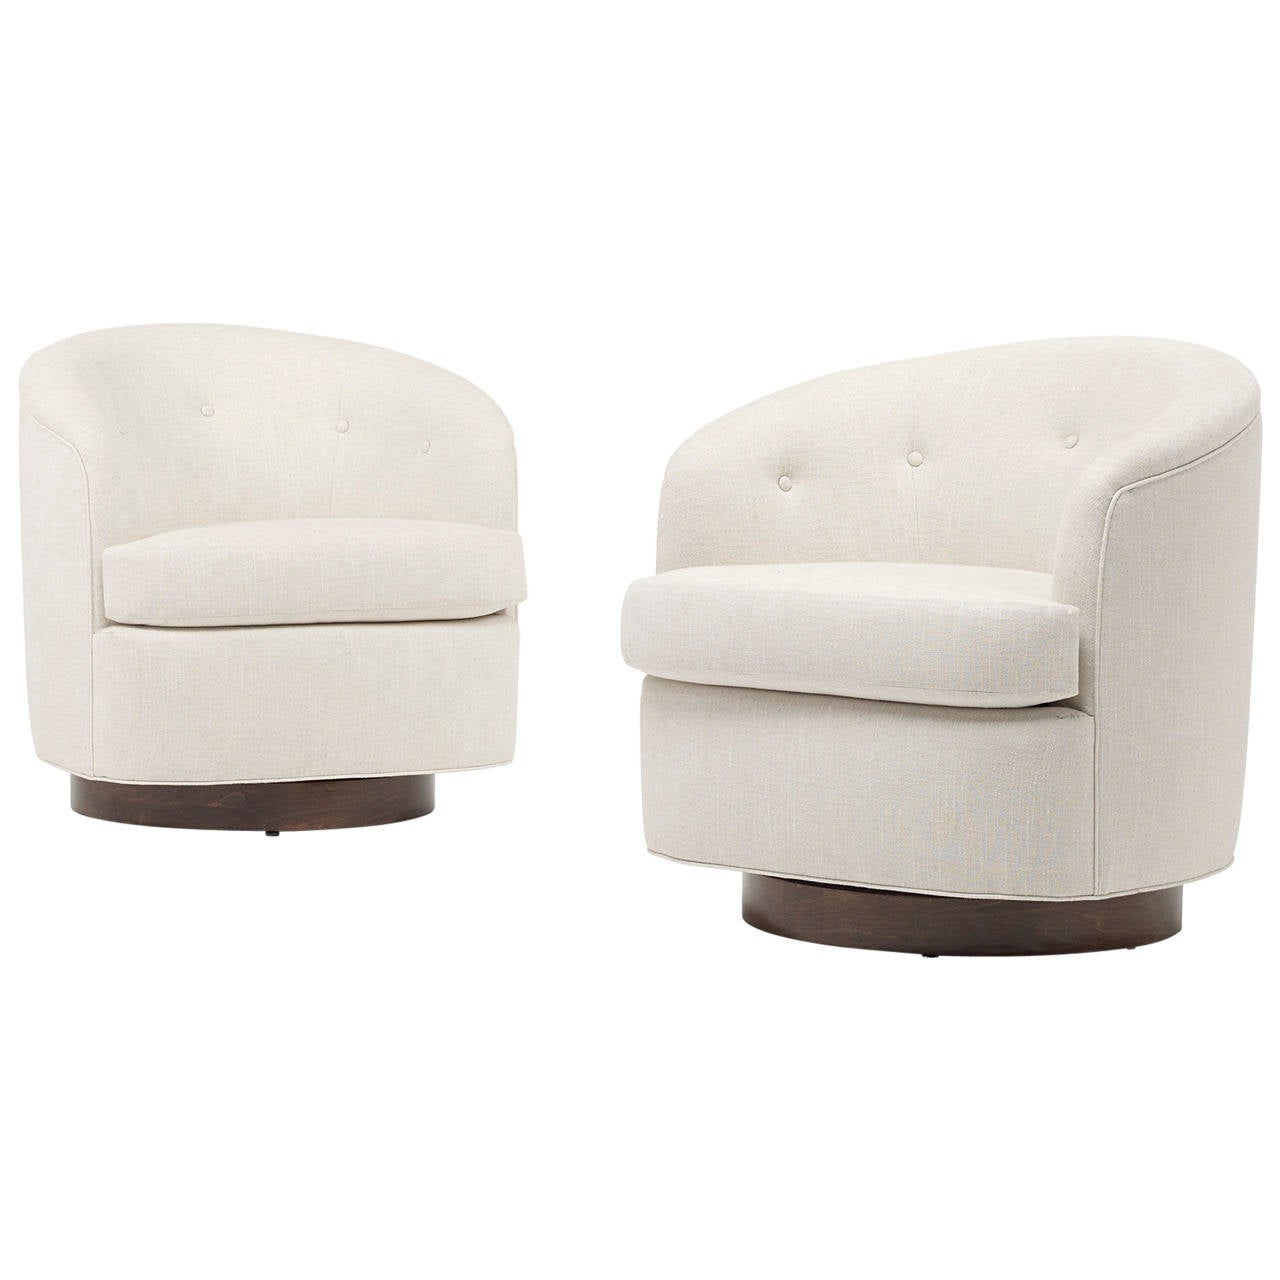 Modern swivel lounge chairs pair at 1stdibs for Modern swivel chair